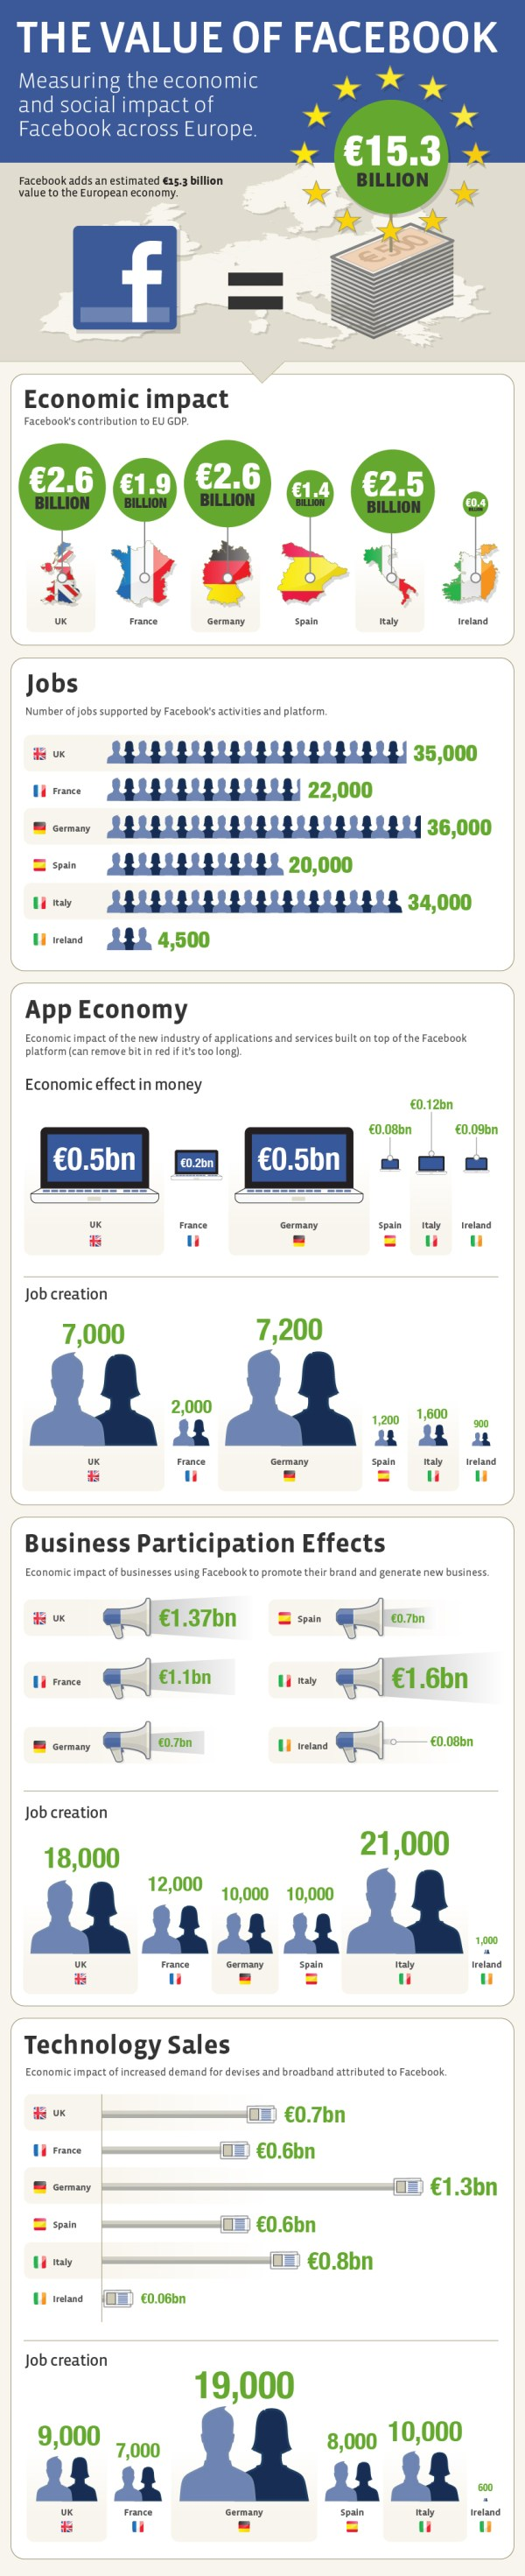 Infographic of Facebook's $15B impact on the European economy (Quelle: facebook.com)